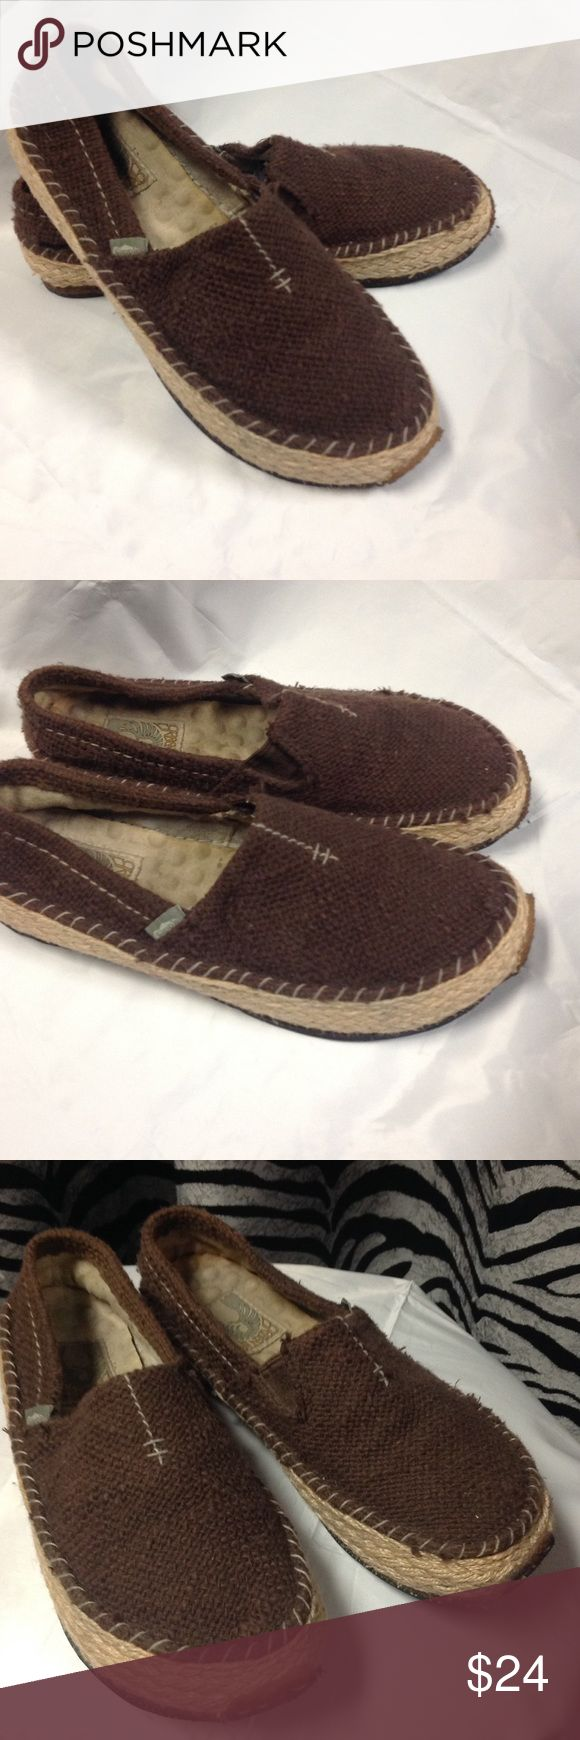 Green Toe Espadrilles...Size 8.5 Great Summer slip ons. Very rugged with a hard rubber sole that looks like recycled tire tread. Insides show some wear but in good condition. No flaws to note. Bundle for a better price. Green Toe Shoes Espadrilles